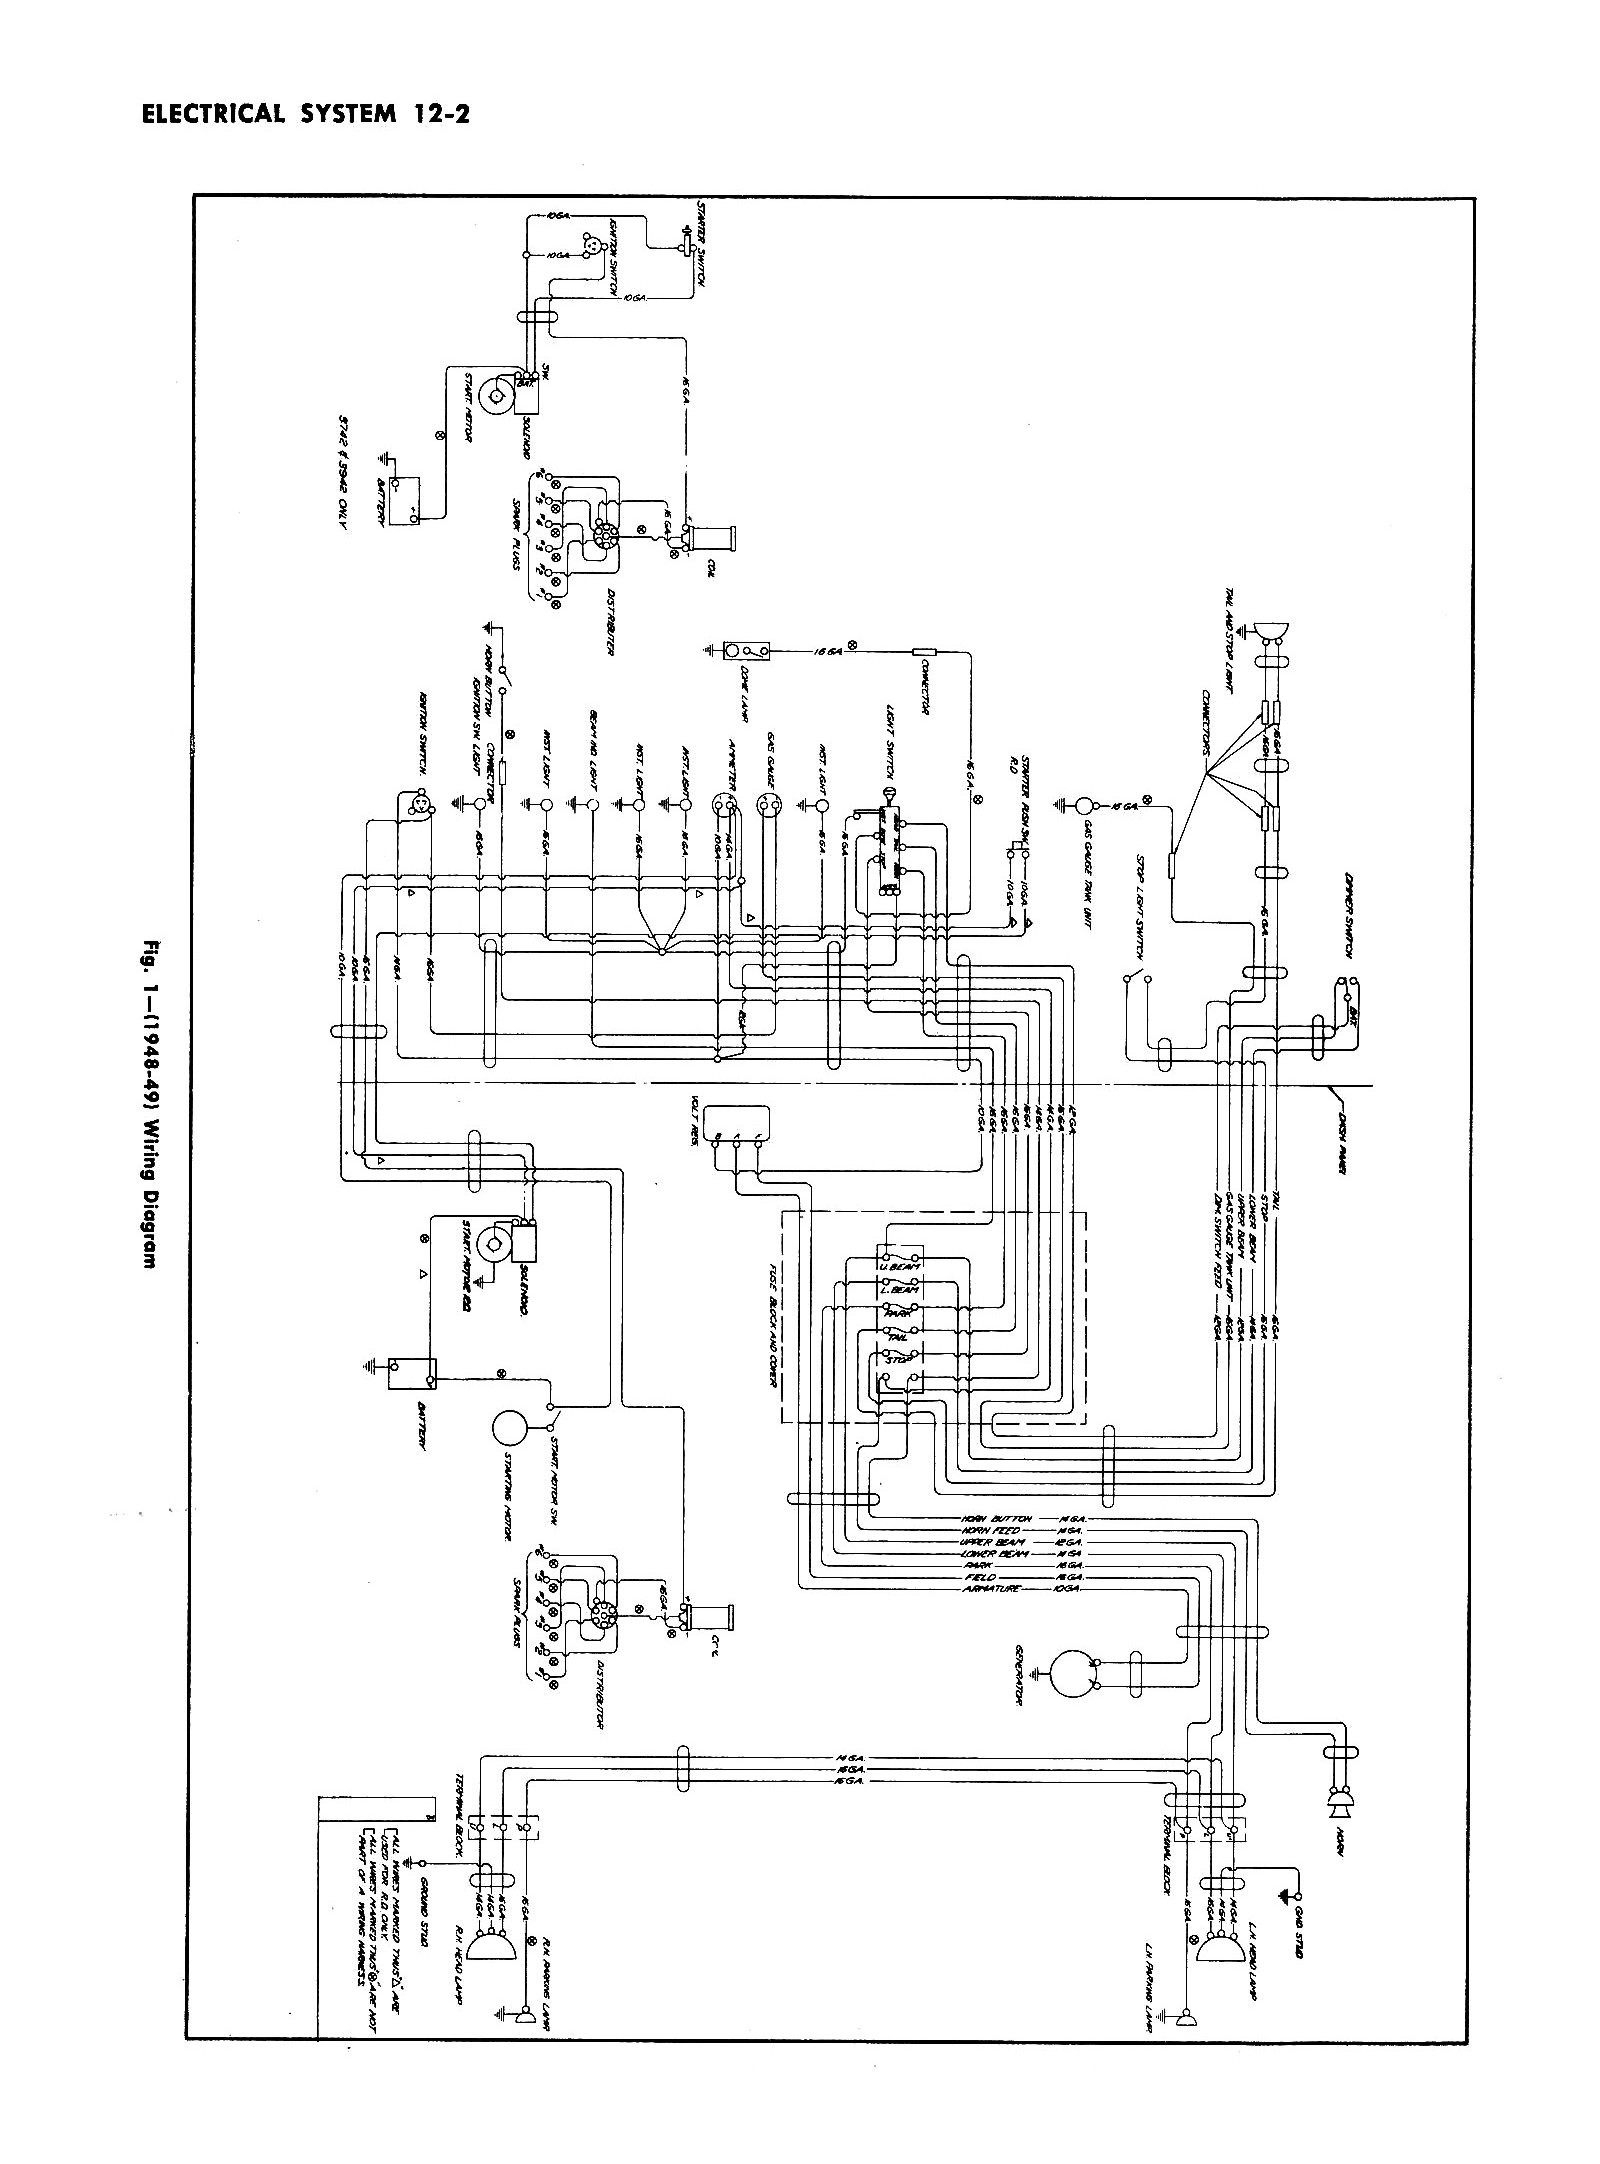 55 Chevy Truck Wiring Diagram | Manual E-Books - Chevy Steering Column Wiring Diagram